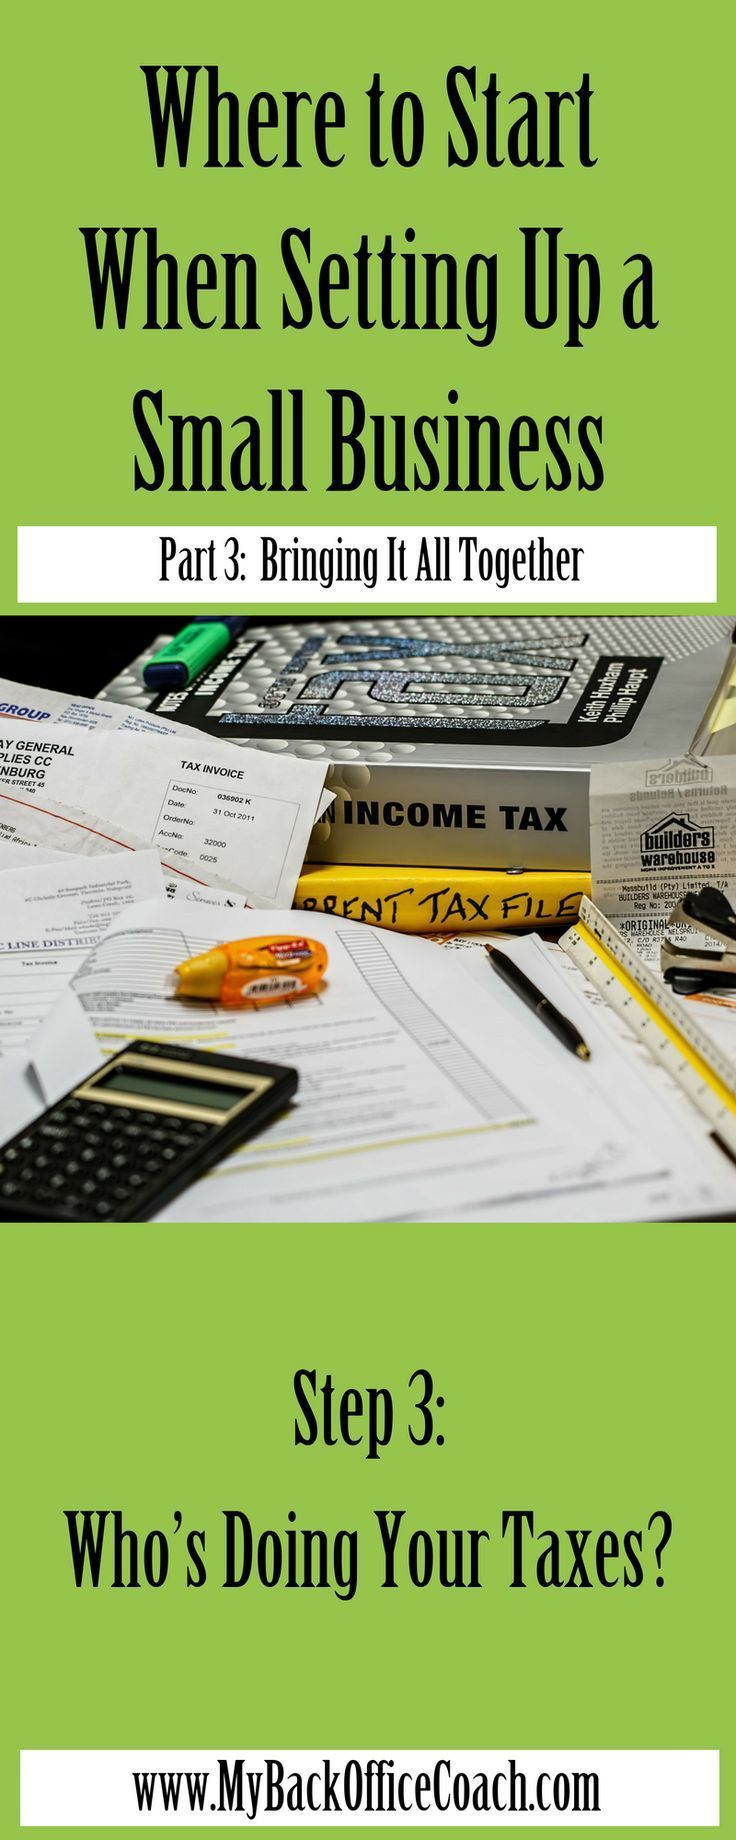 Where To Start When Setting Up Your Business Part 3 Of 3 My Back Office Coach Starting Small Business Small Business Bookkeeping Small Business Start Up